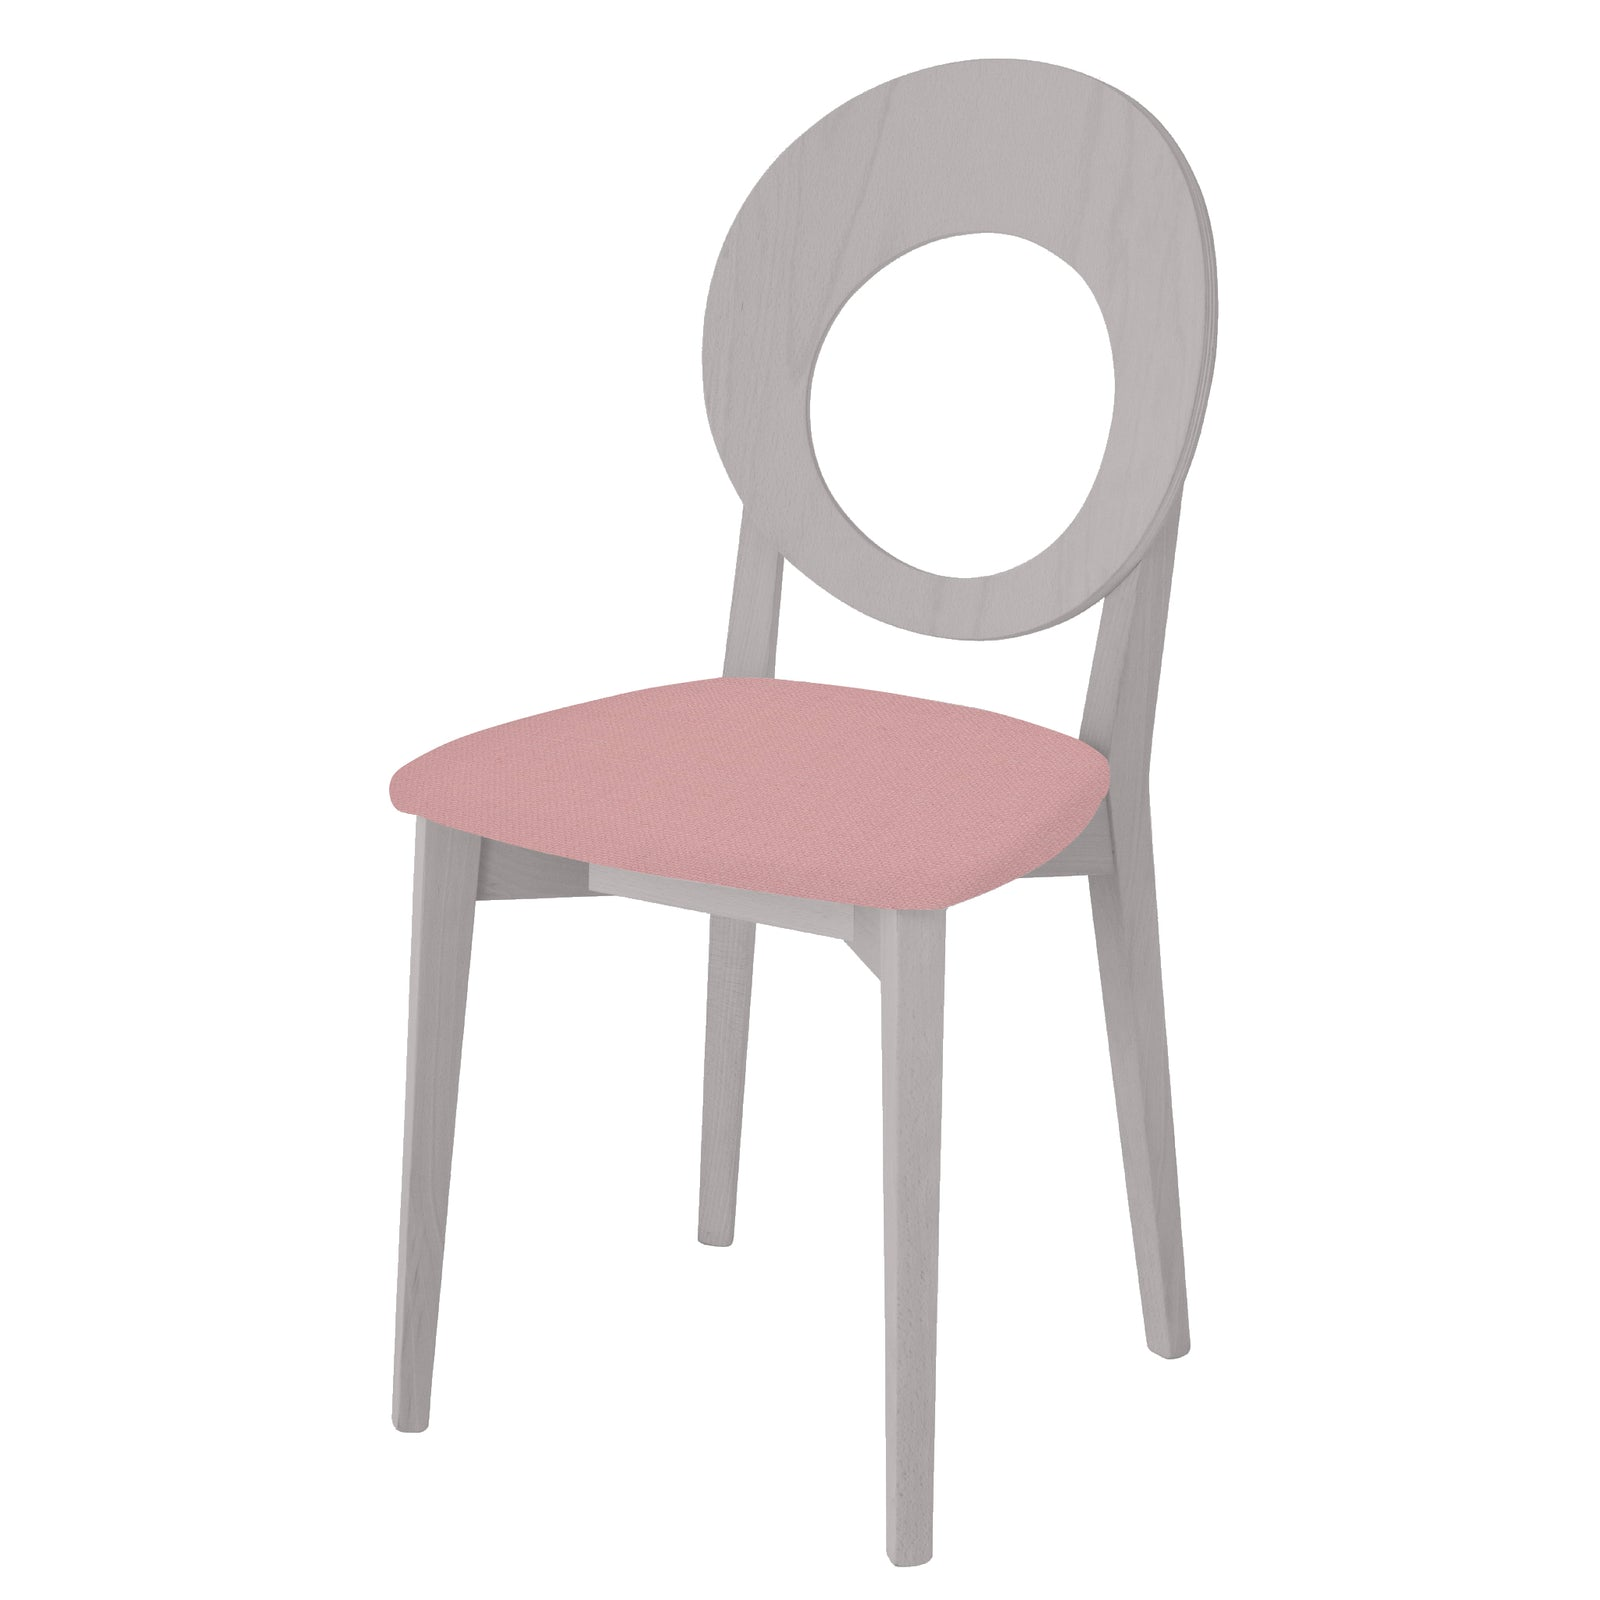 Chloe Dining Chair made-to-order in your chosen colourway.